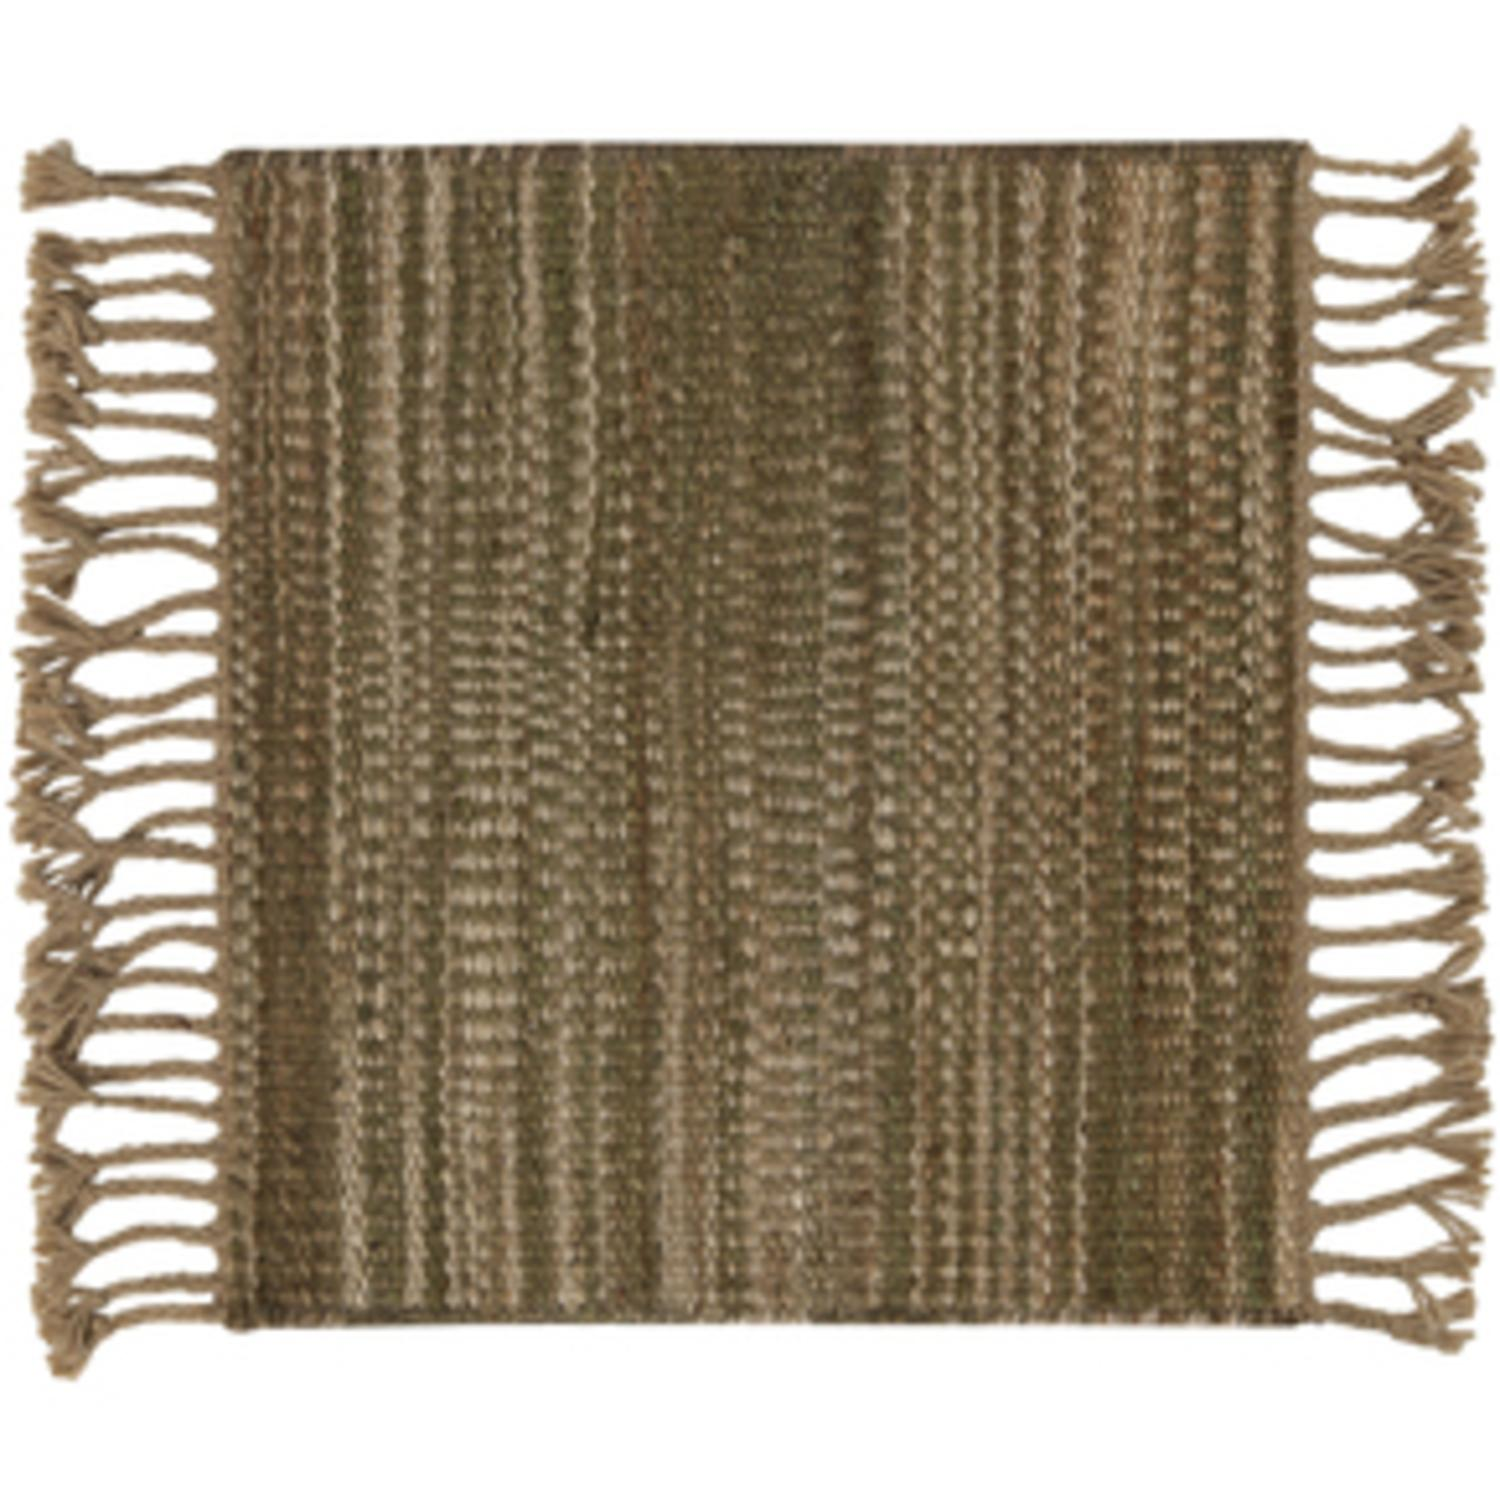 5' x 8' Vintage Style Beige Area Throw Rug